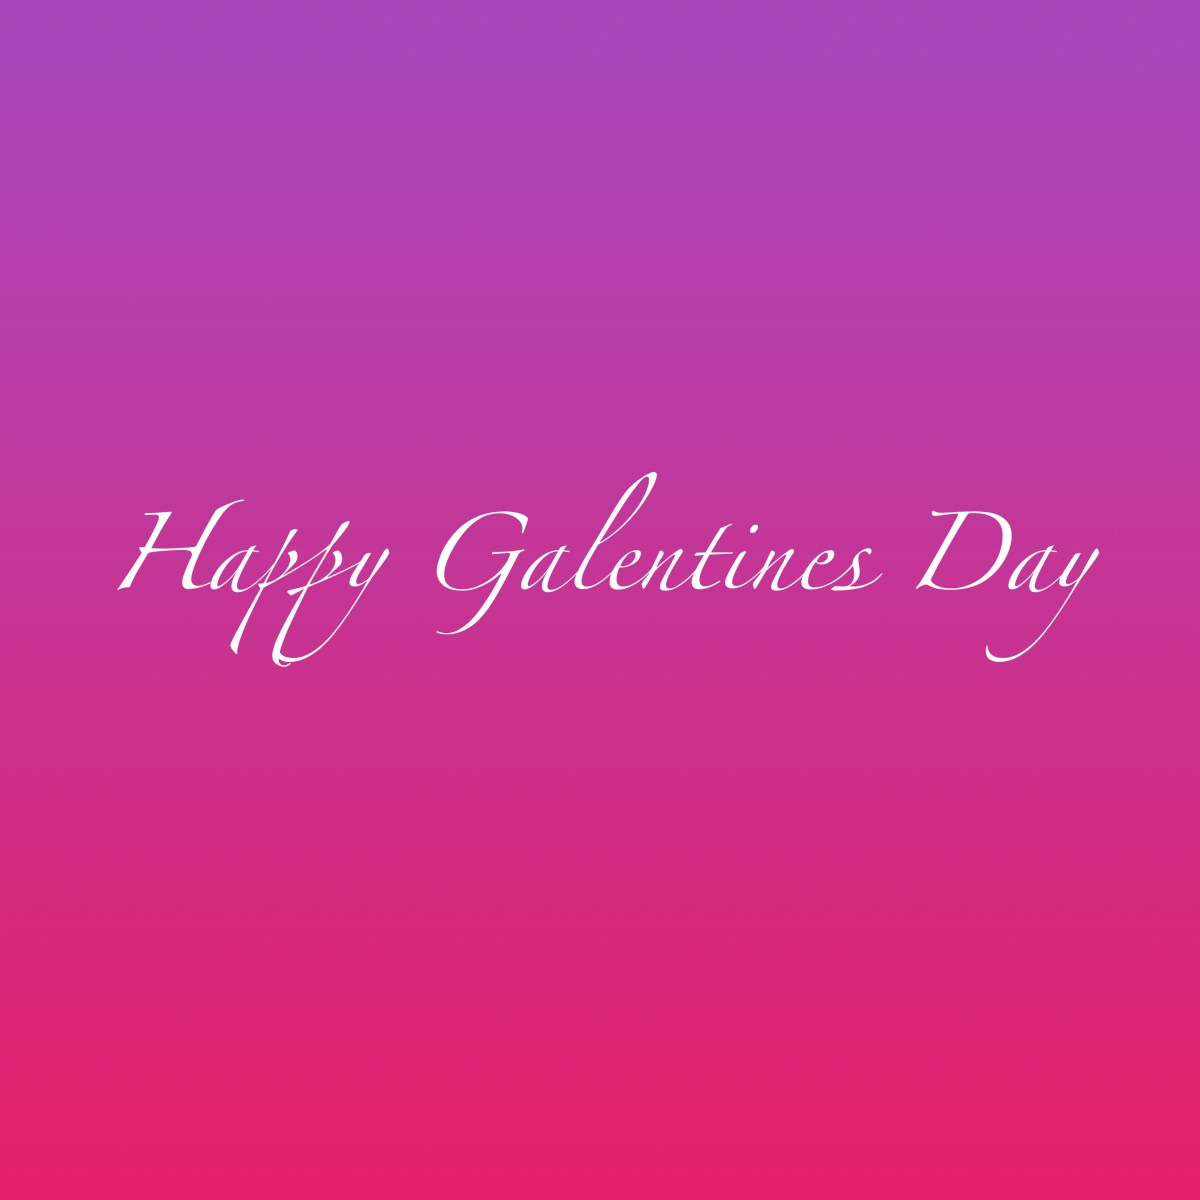 Happy Galentines Day Our Girls Gang